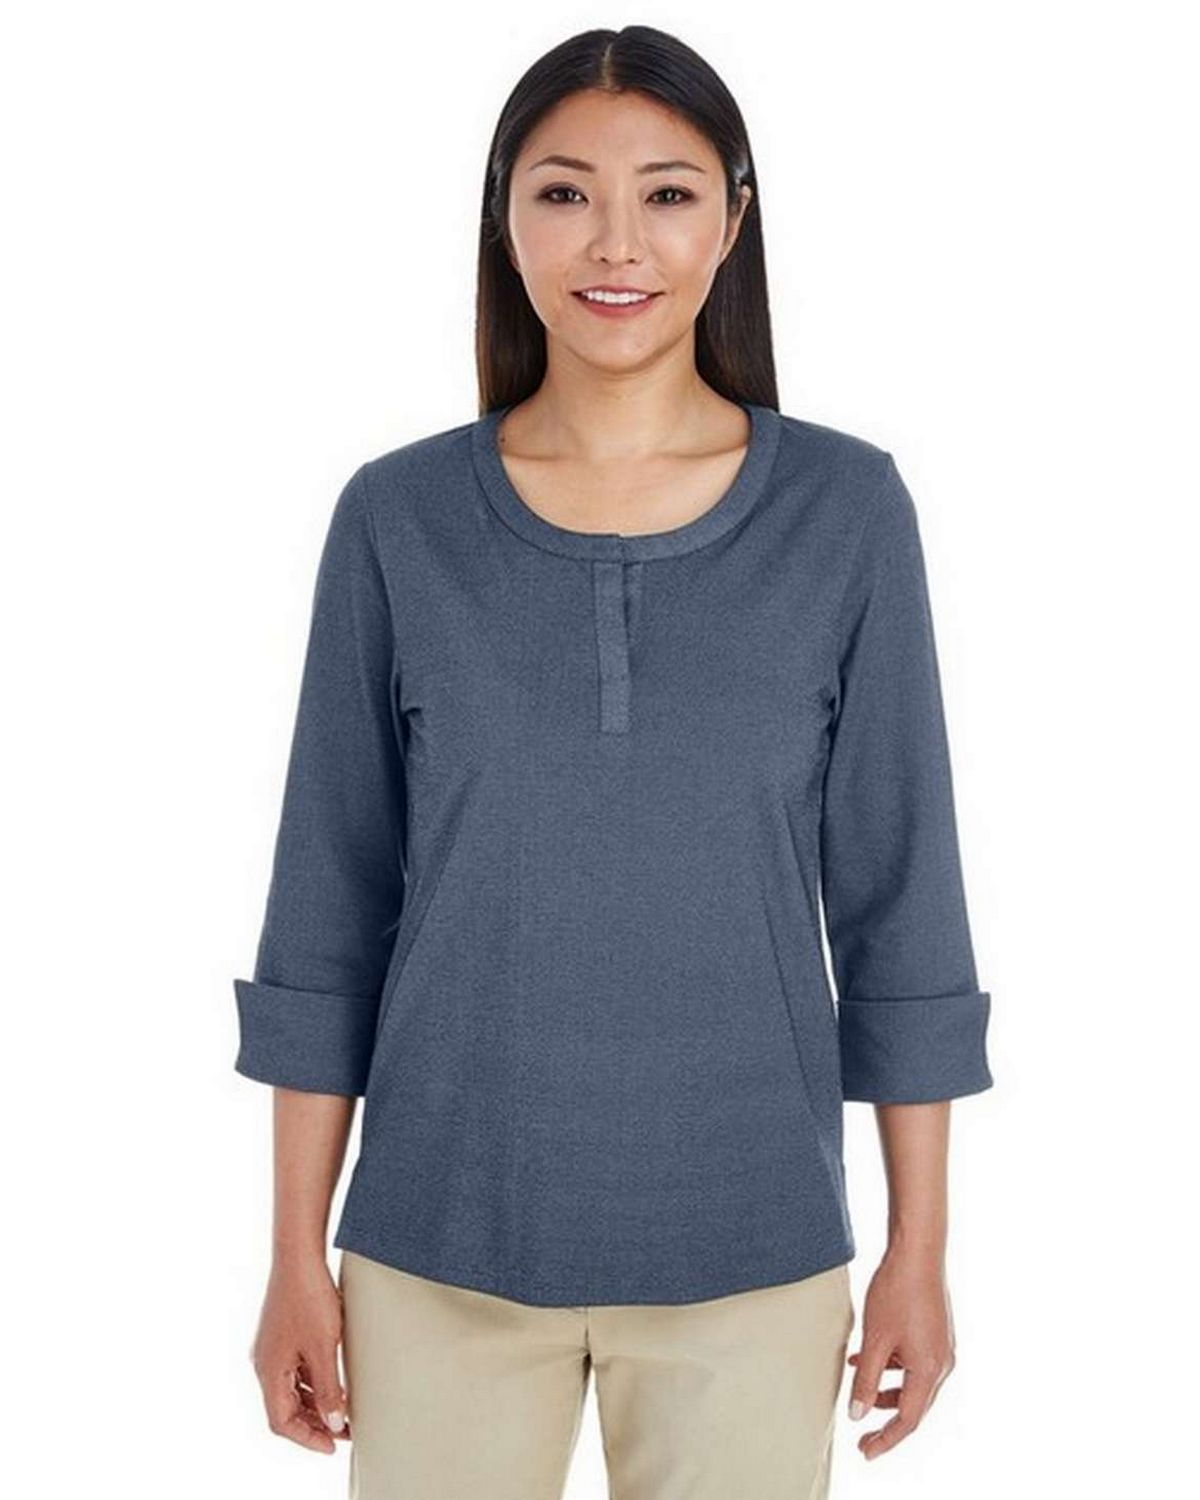 Devon  Jones DG230W Ladies Central Cotton Blend Melange Knit Top